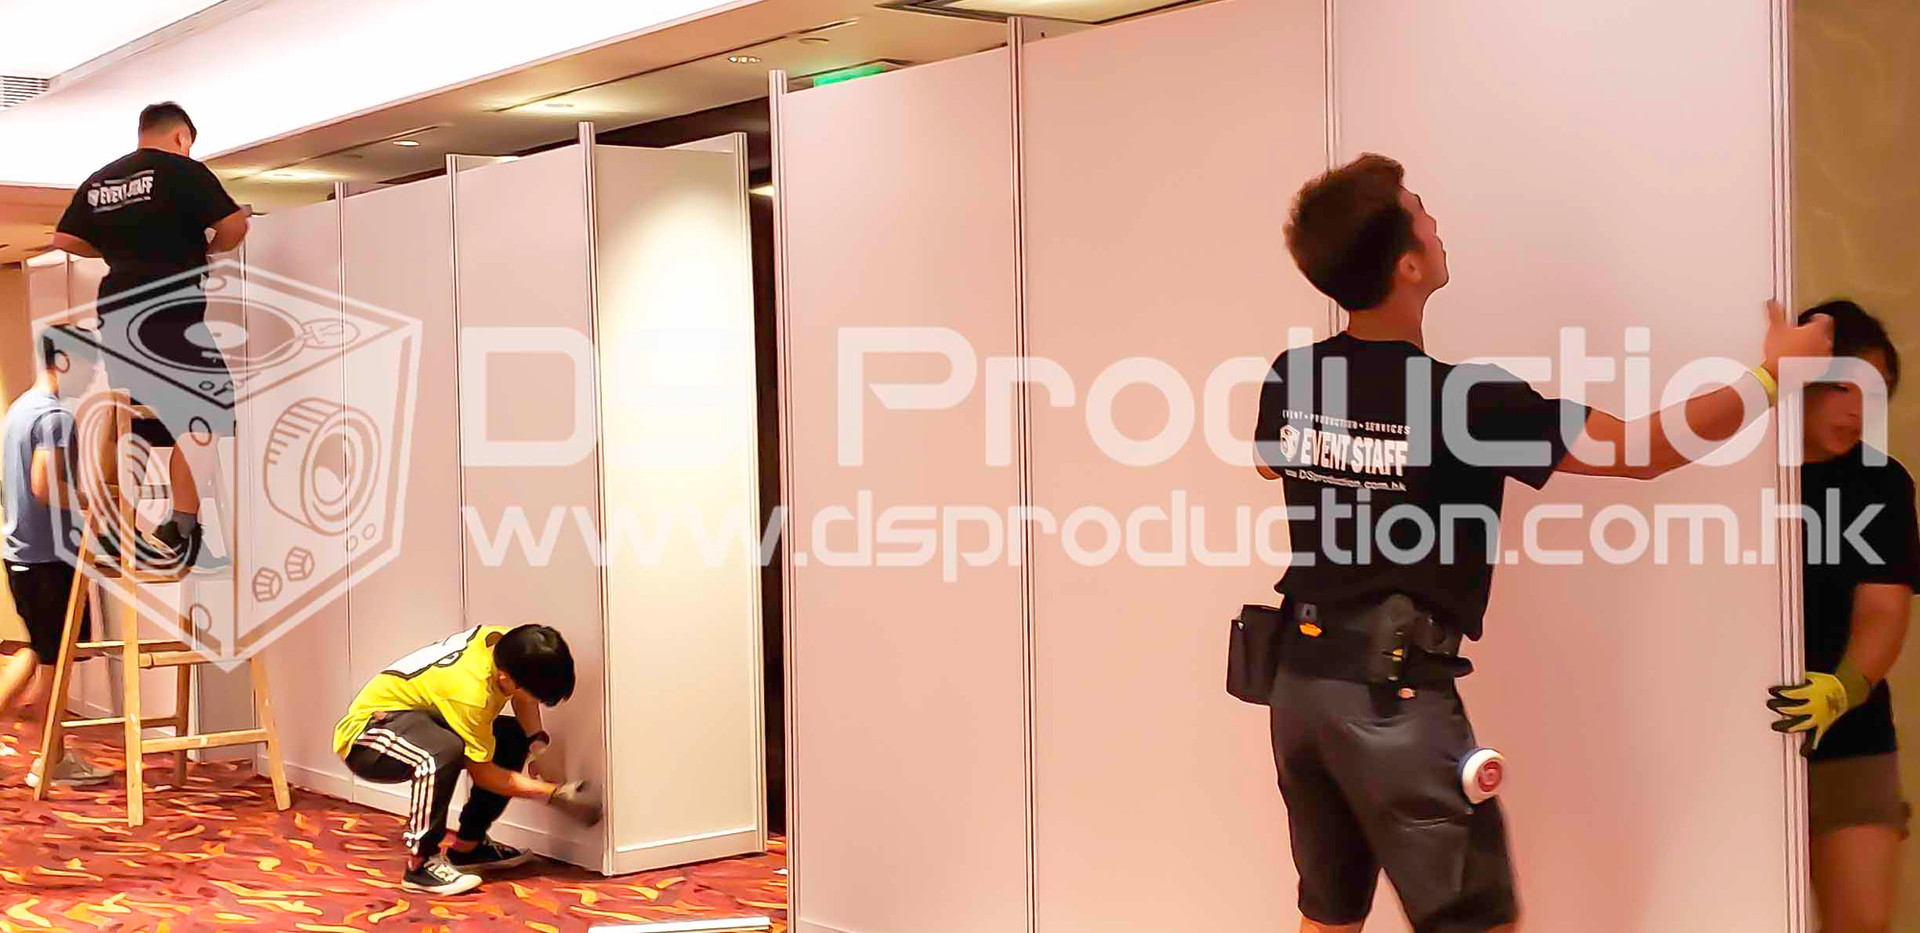 Exhibition R8 System Booth 展覽製作